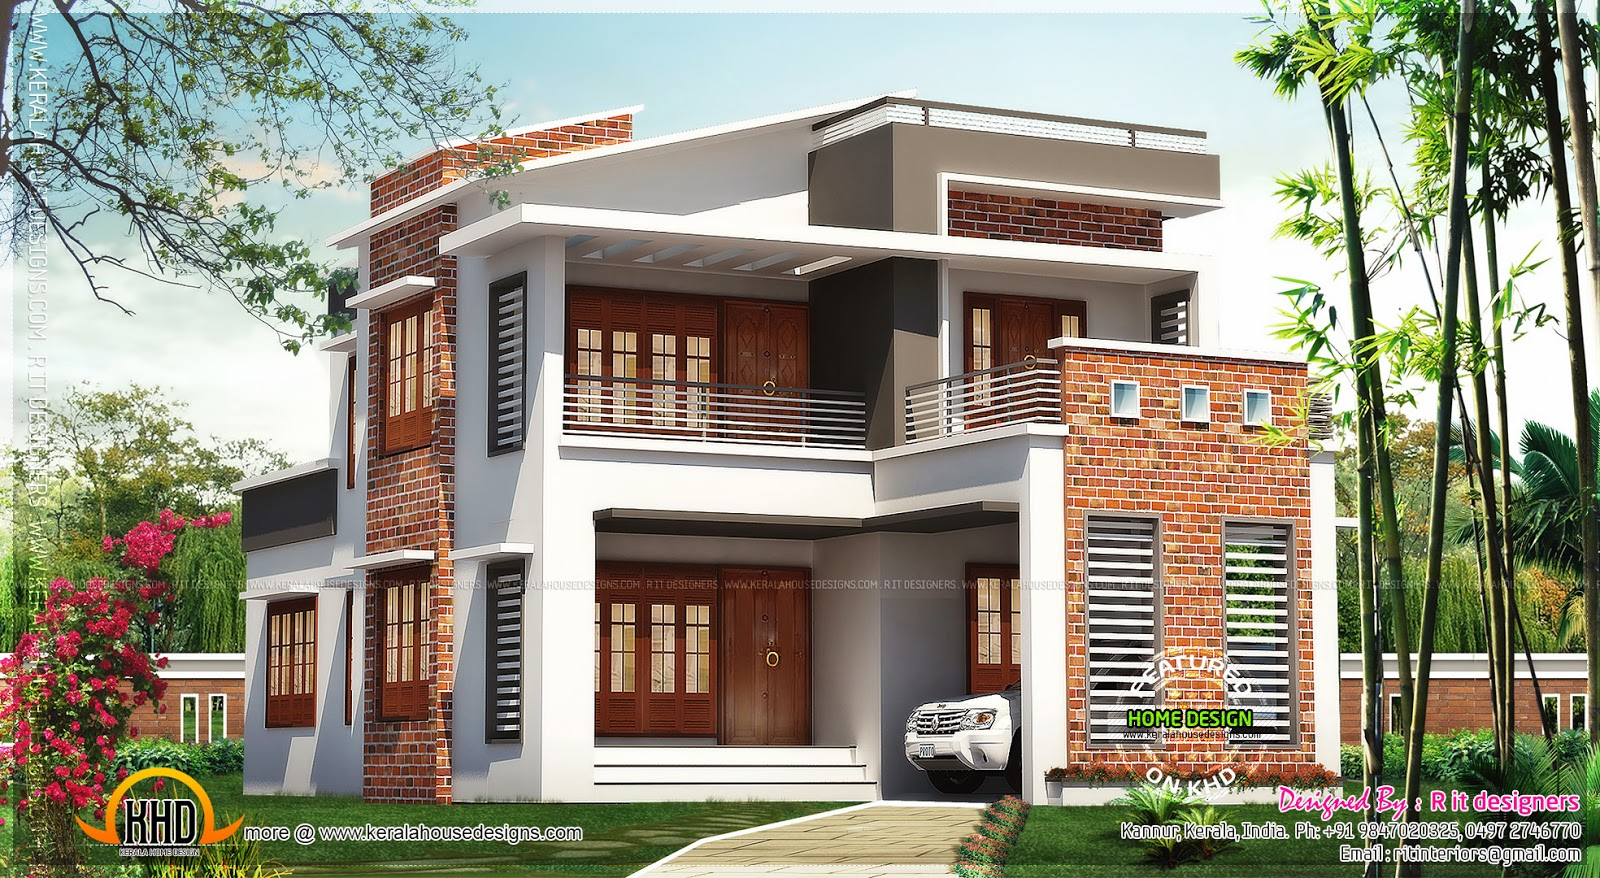 Brick mix house exterior design kerala home design and for Home exterior design images